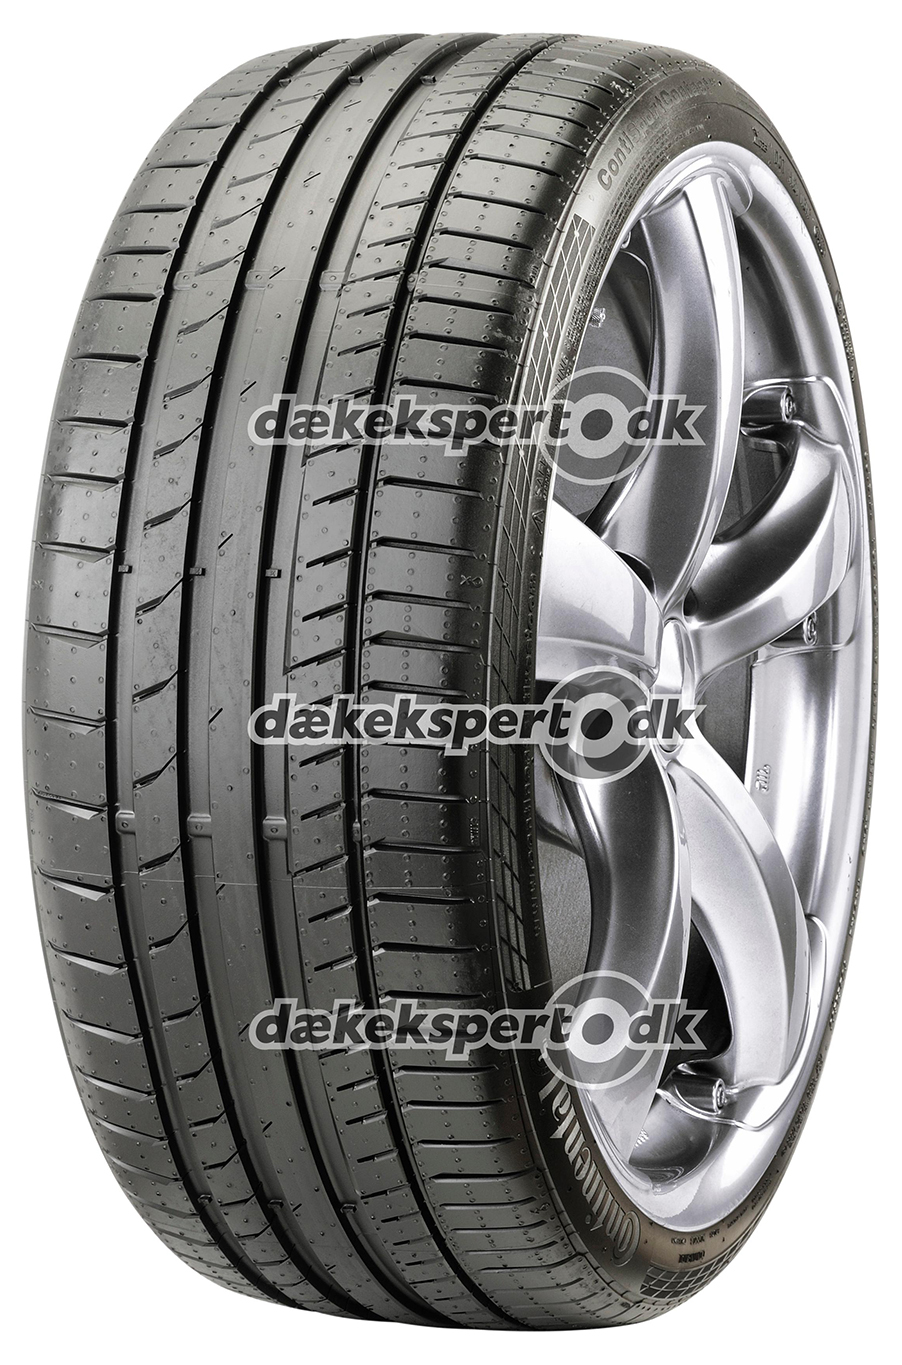 255/30 ZR19 91Y SportContact 5 P XL FR RO2  SportContact 5 P XL FR RO2